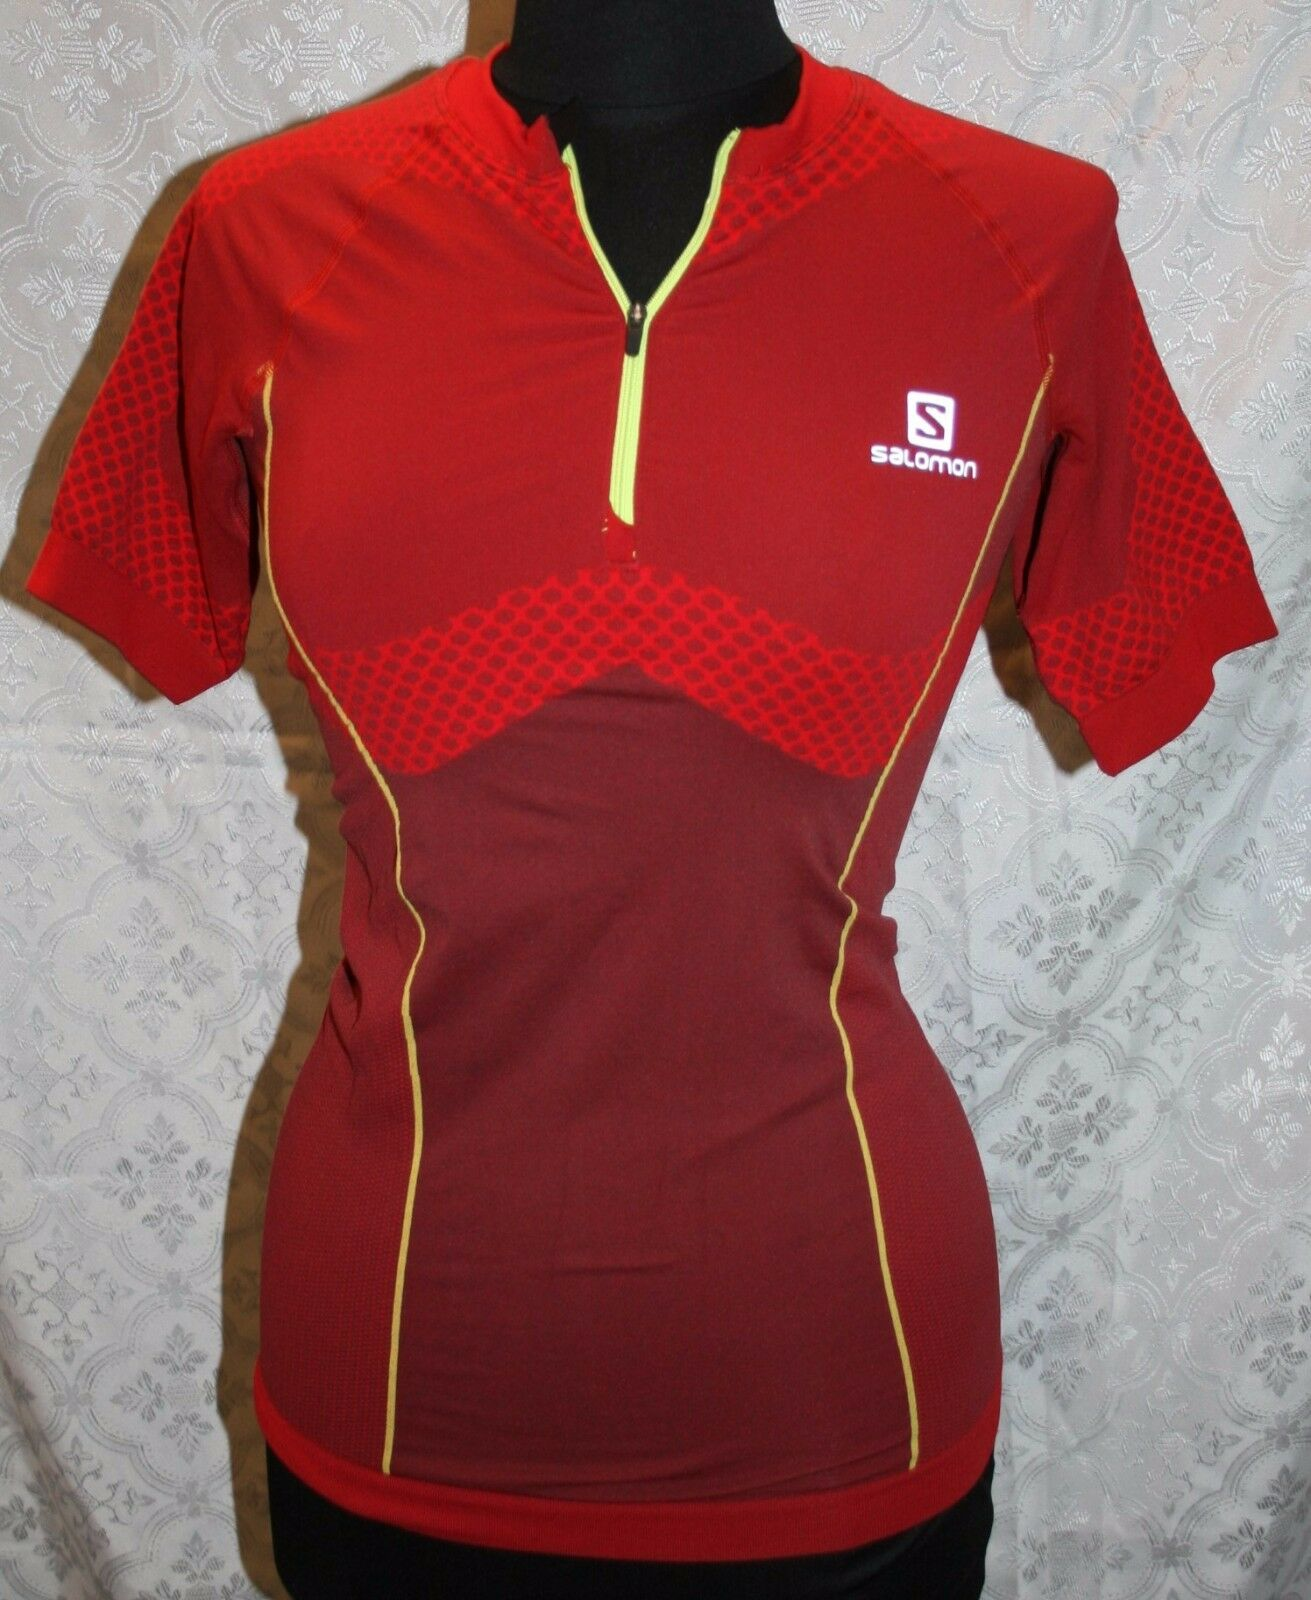 Salomon Cycling Jersey  L NWT Shirt Sample New Red Exo Motion Zip Tee Womens Top  discount promotions